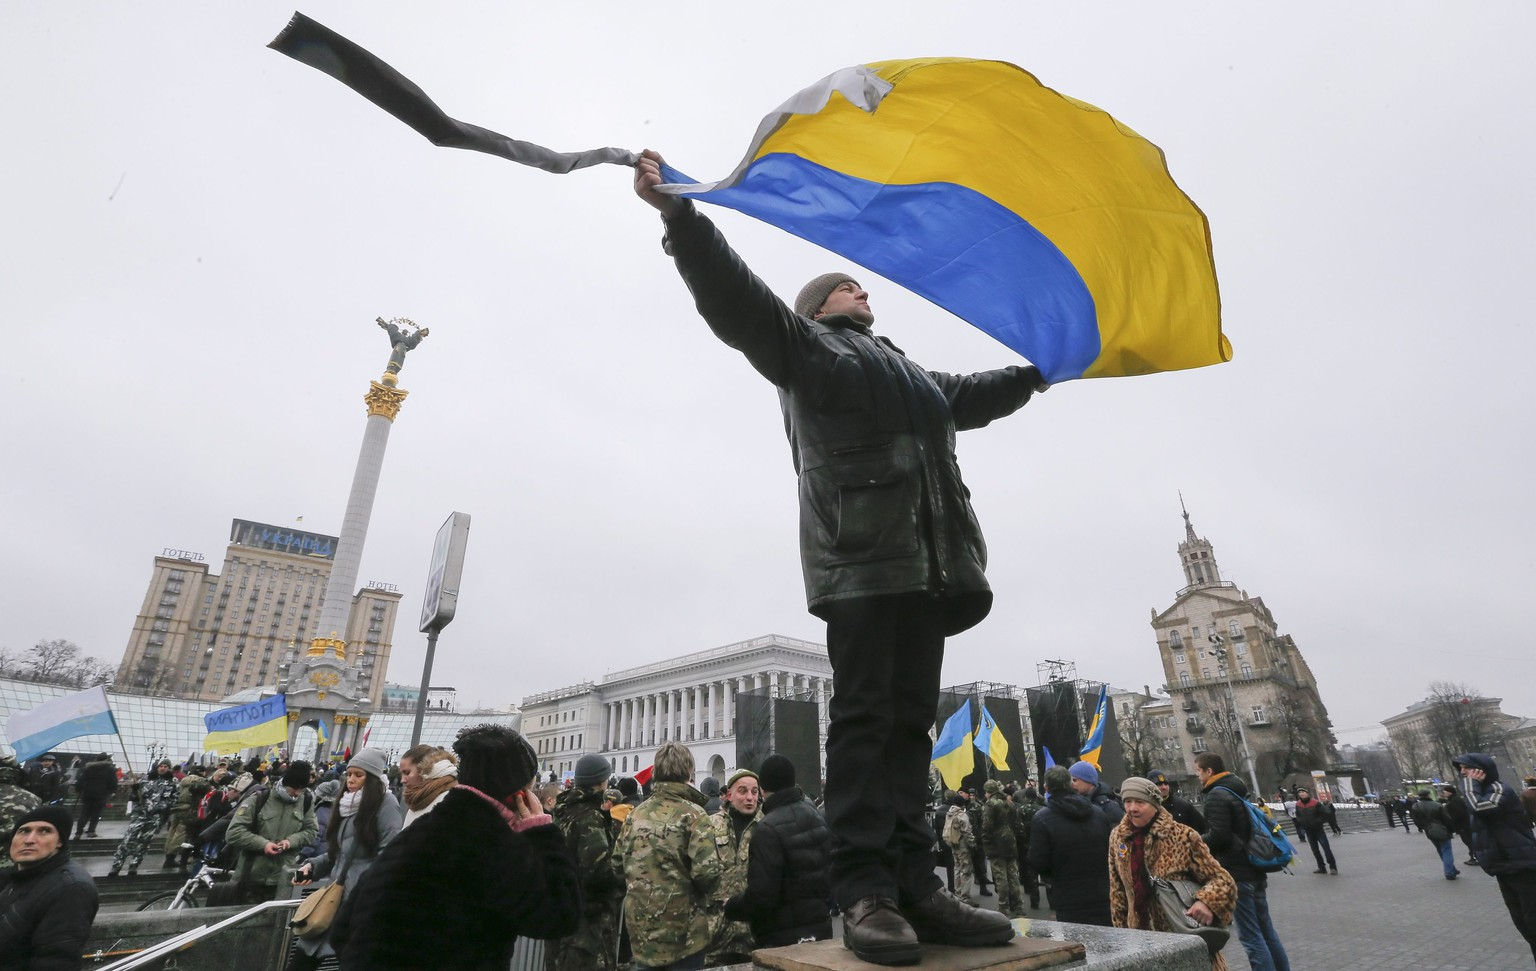 epa04628704 An Ukrainian man waves a National flag at the Independence square in Kiev, Ukraine 20 February 2015. Ukrainians marked the first year anniversary of the escalated violence in Maidan where it resulted in at least 100 people being killed. The leaders of France, Germany, Russia and Ukraine agreed in a phone call, to 'rigorously implement' the peace agreement signed last week in Minsk. The leaders also condemned the recent ceasefire violations and discussed the consequences of 'events in Debaltseve' for the peace agreement.  EPA/SERGEY DOLZHENKO